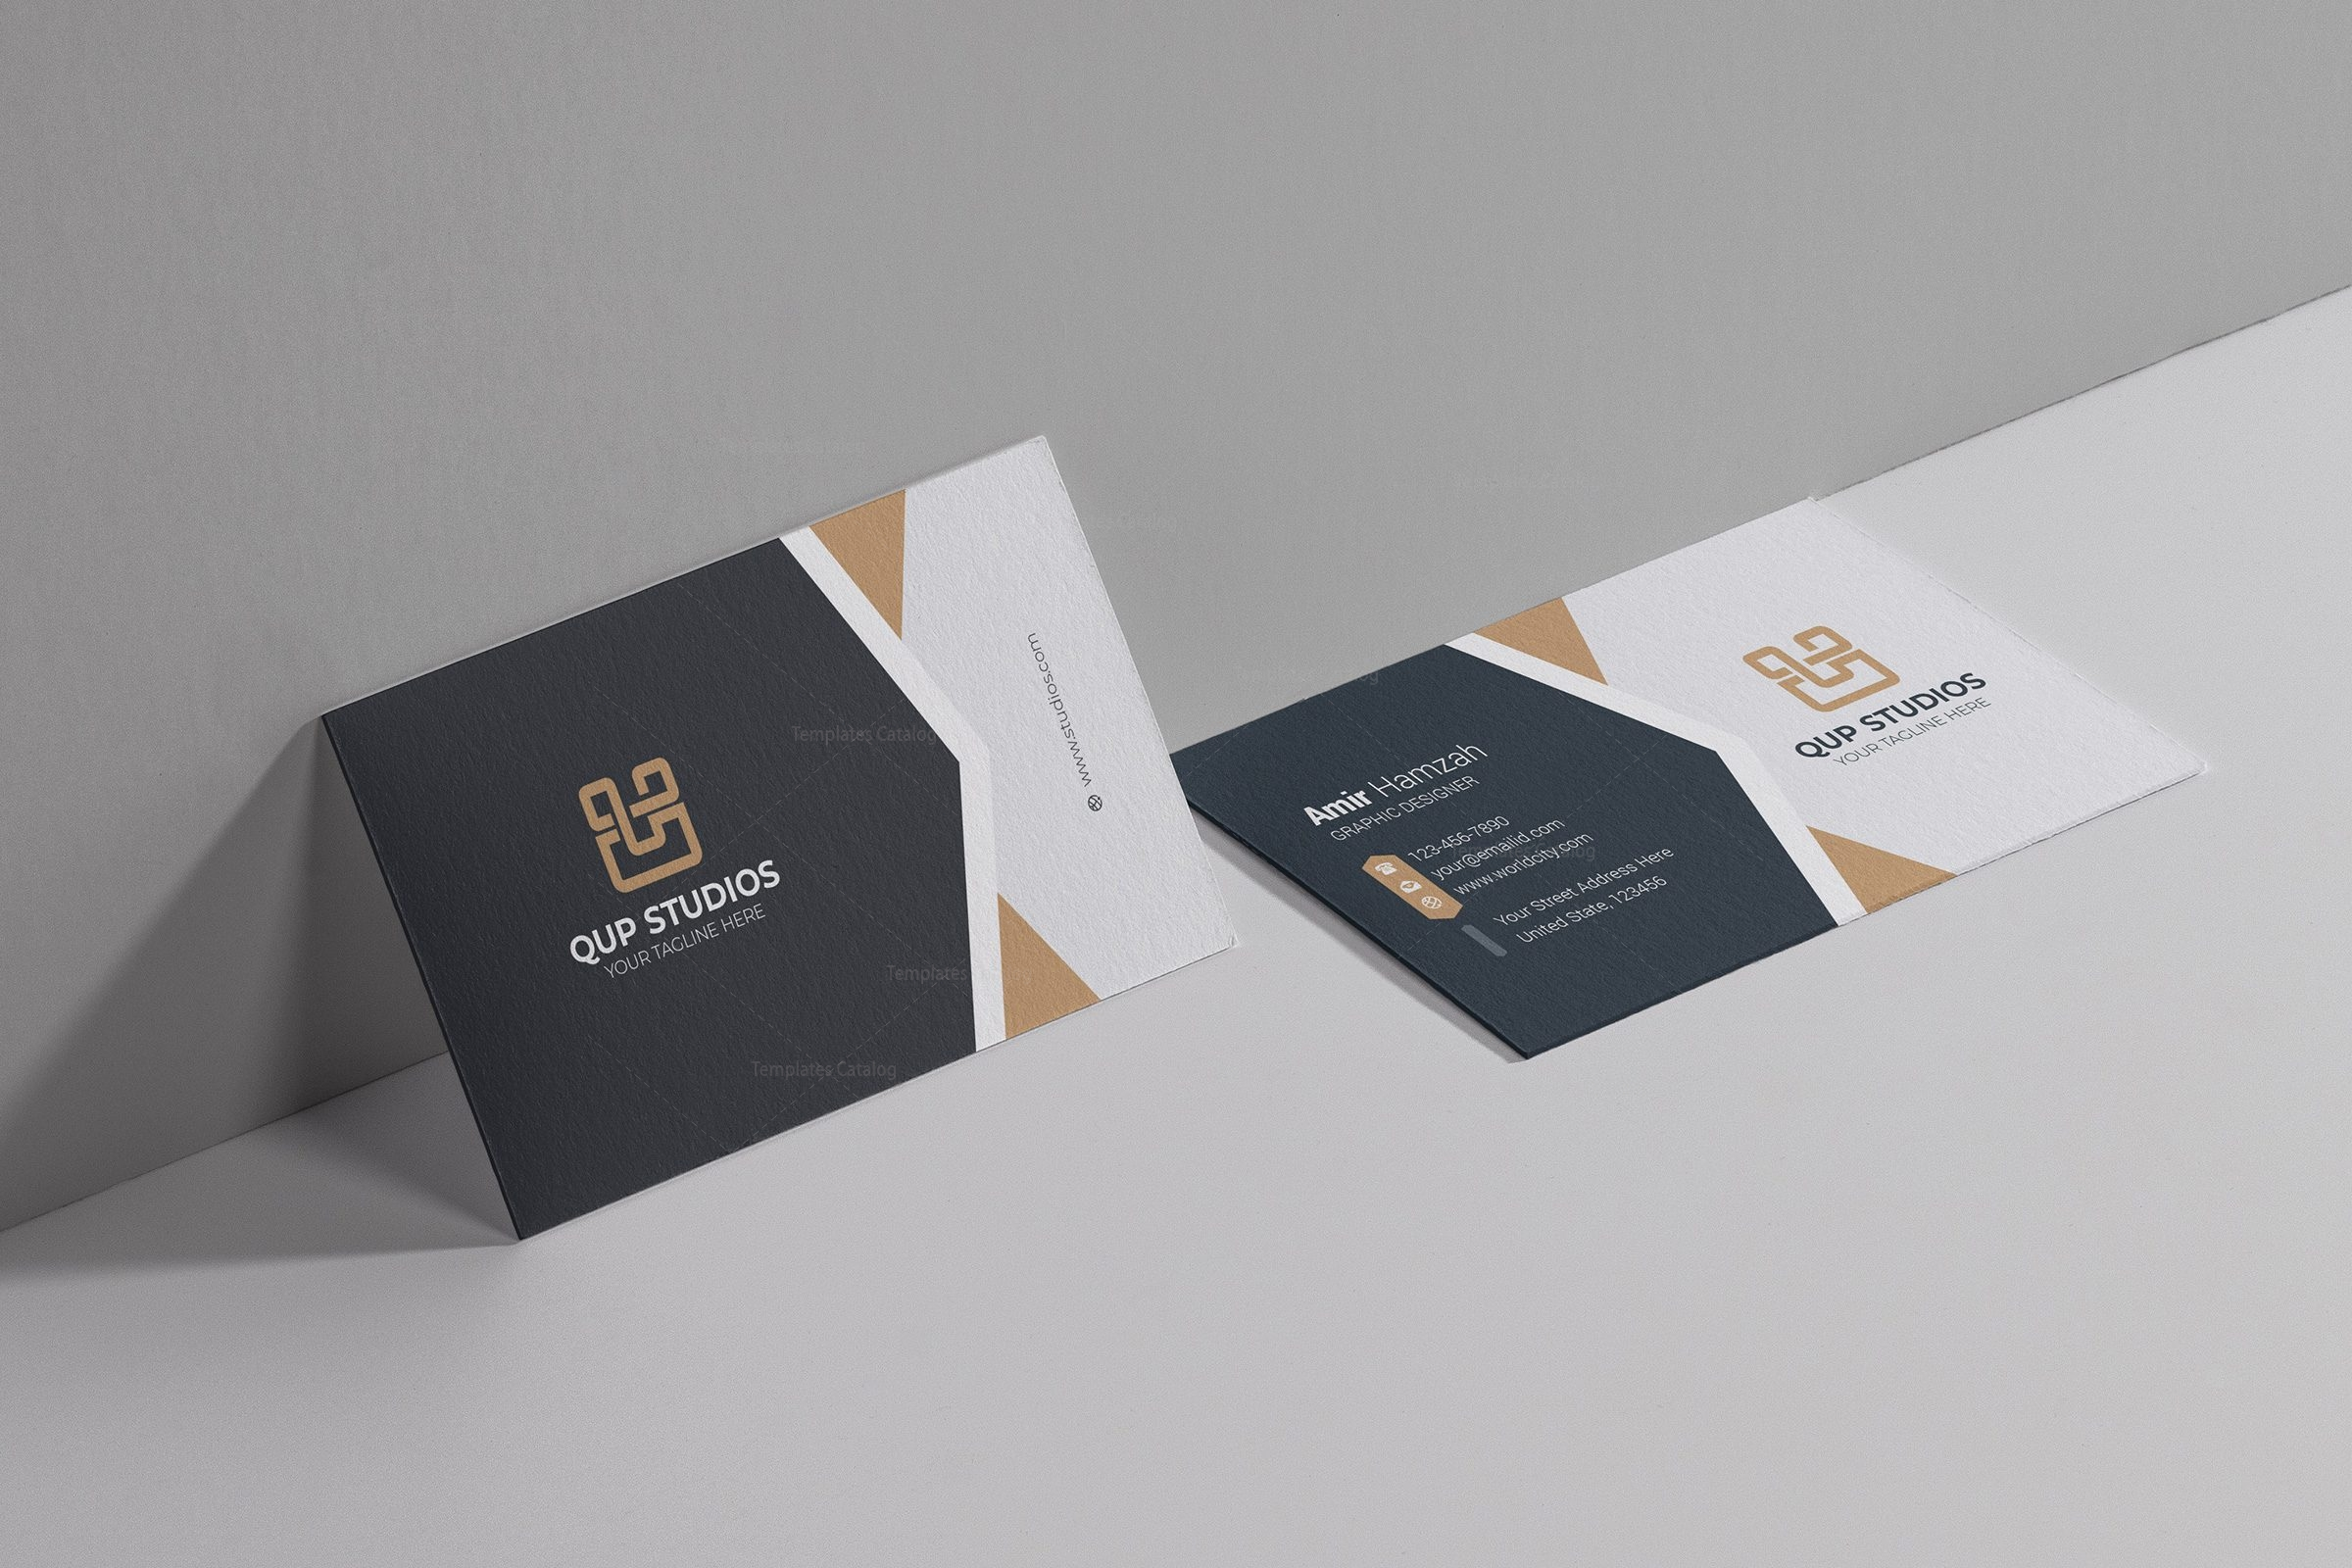 Studio professional business card design template 001786 template studio professionals business card design templates 1 wajeb